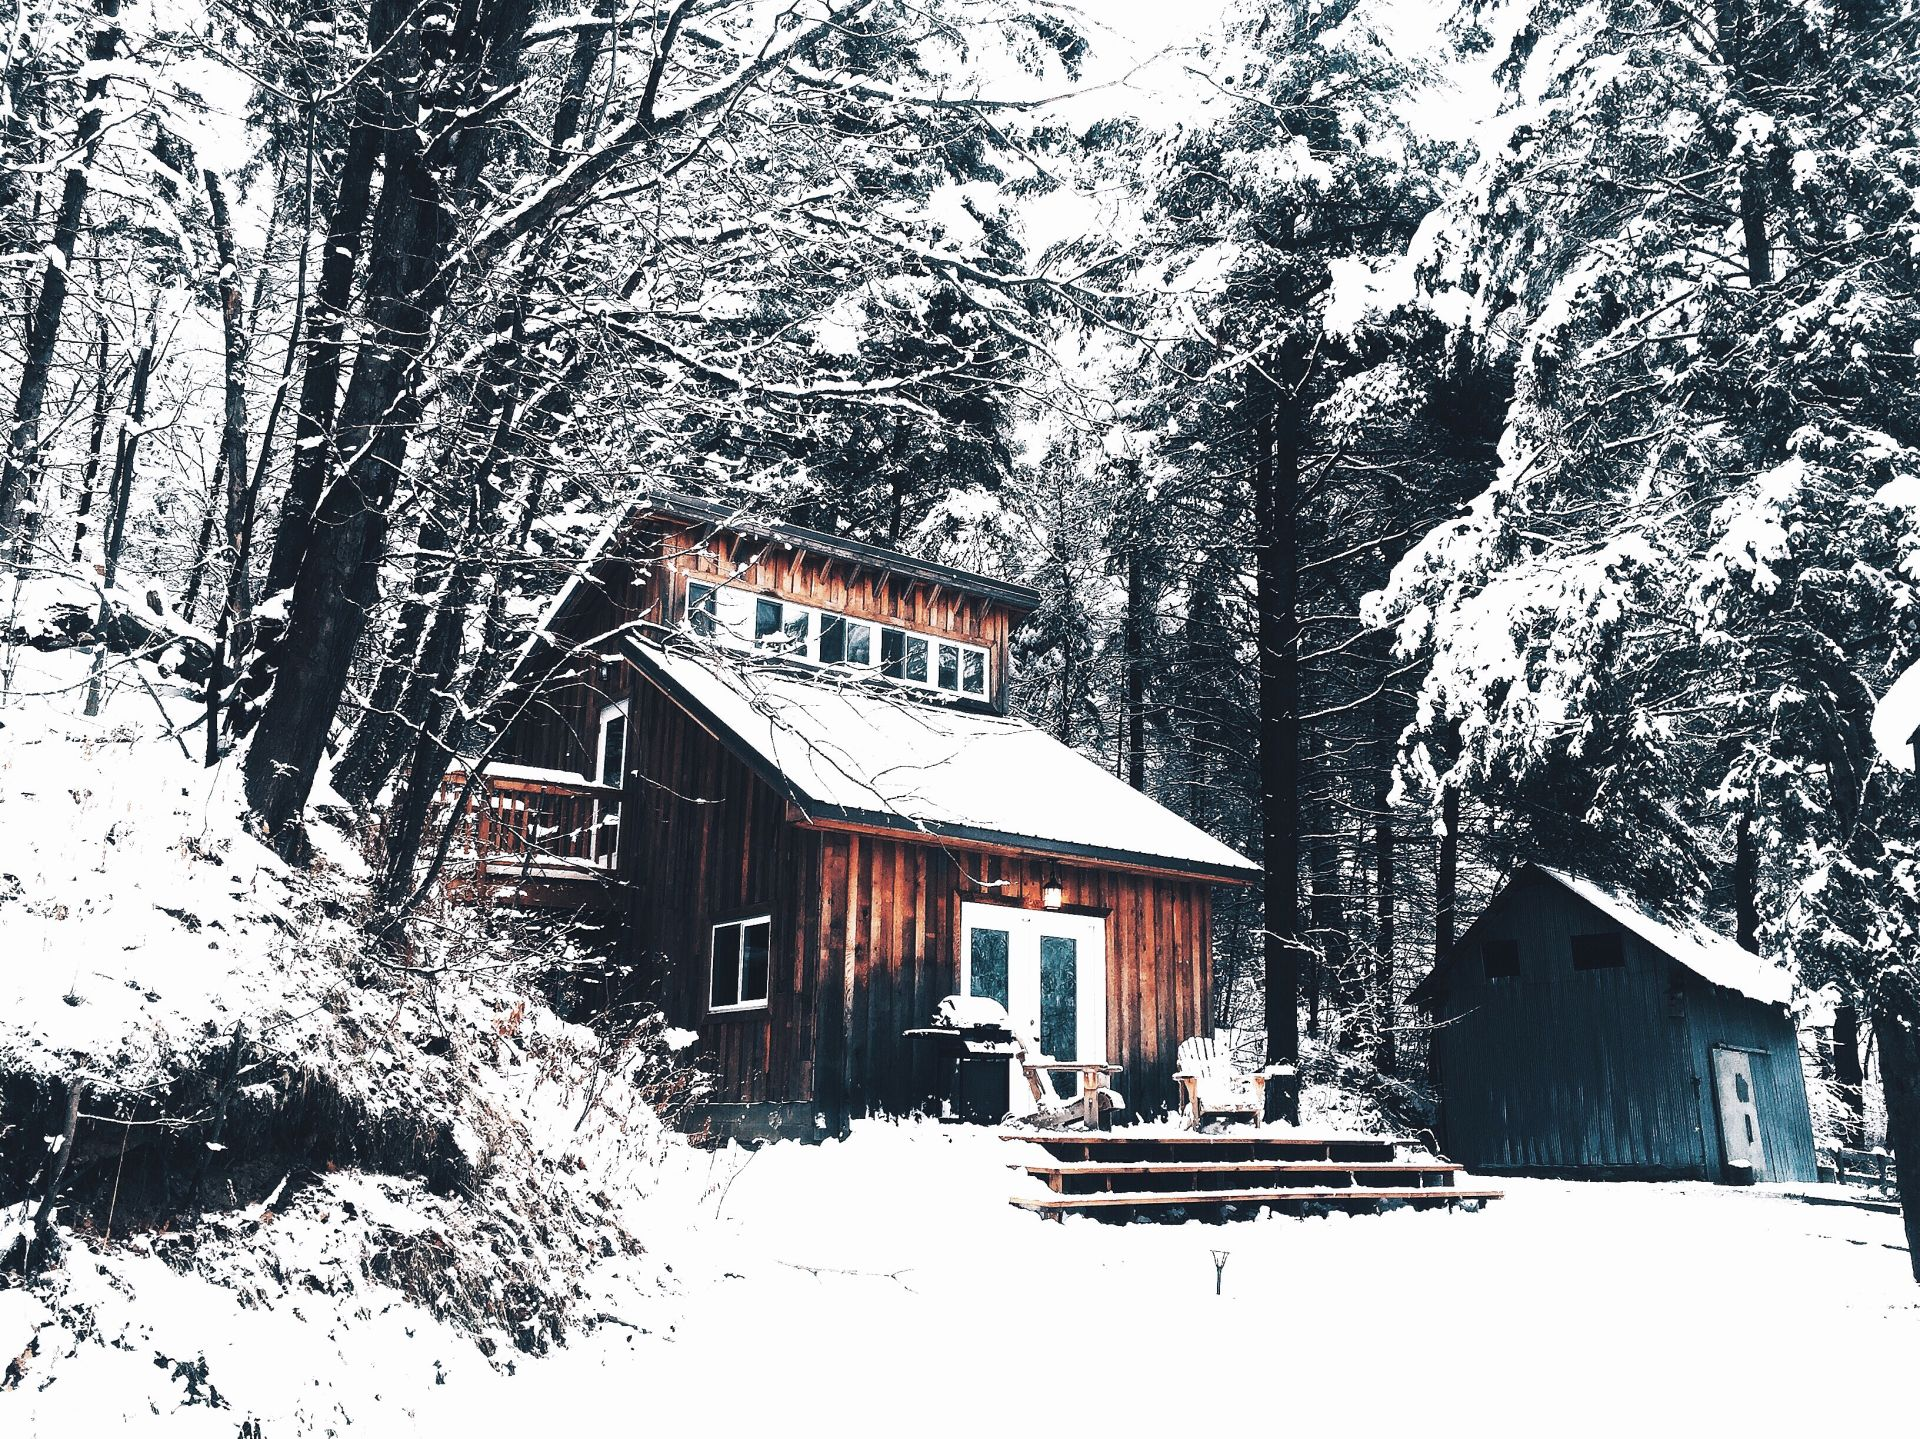 5 Reasons to Buy a Home in the Winter